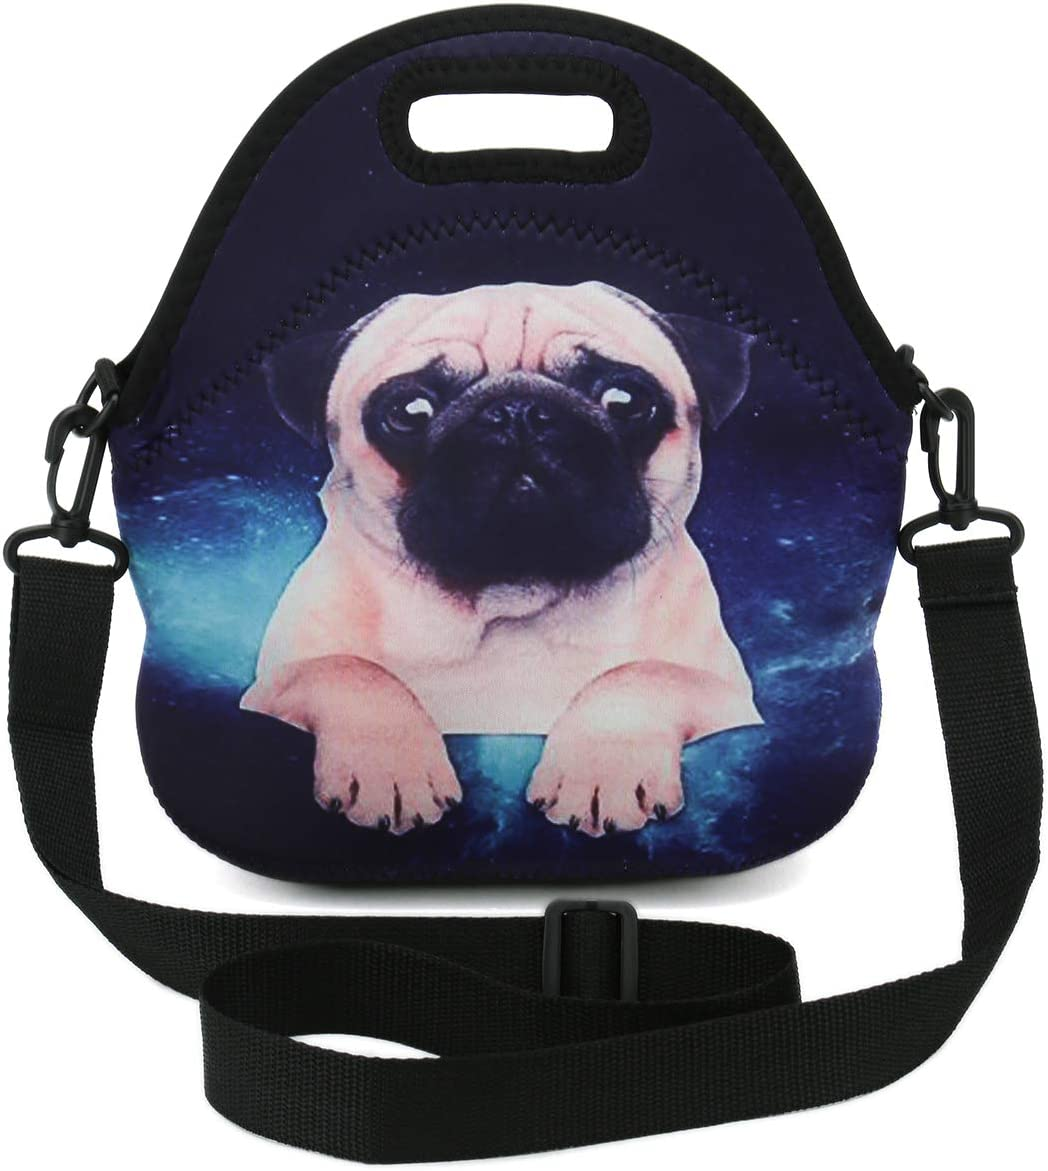 Insulated Neoprene Lunch Bag Tote with Detachable Adjustable Shoulder Strap Thermal Waterproof Outdoor Picnic Work,Office,School Lunch Box For Women,Teens,Girls,Kids,Baby,Adults (Starry Sky Pug)